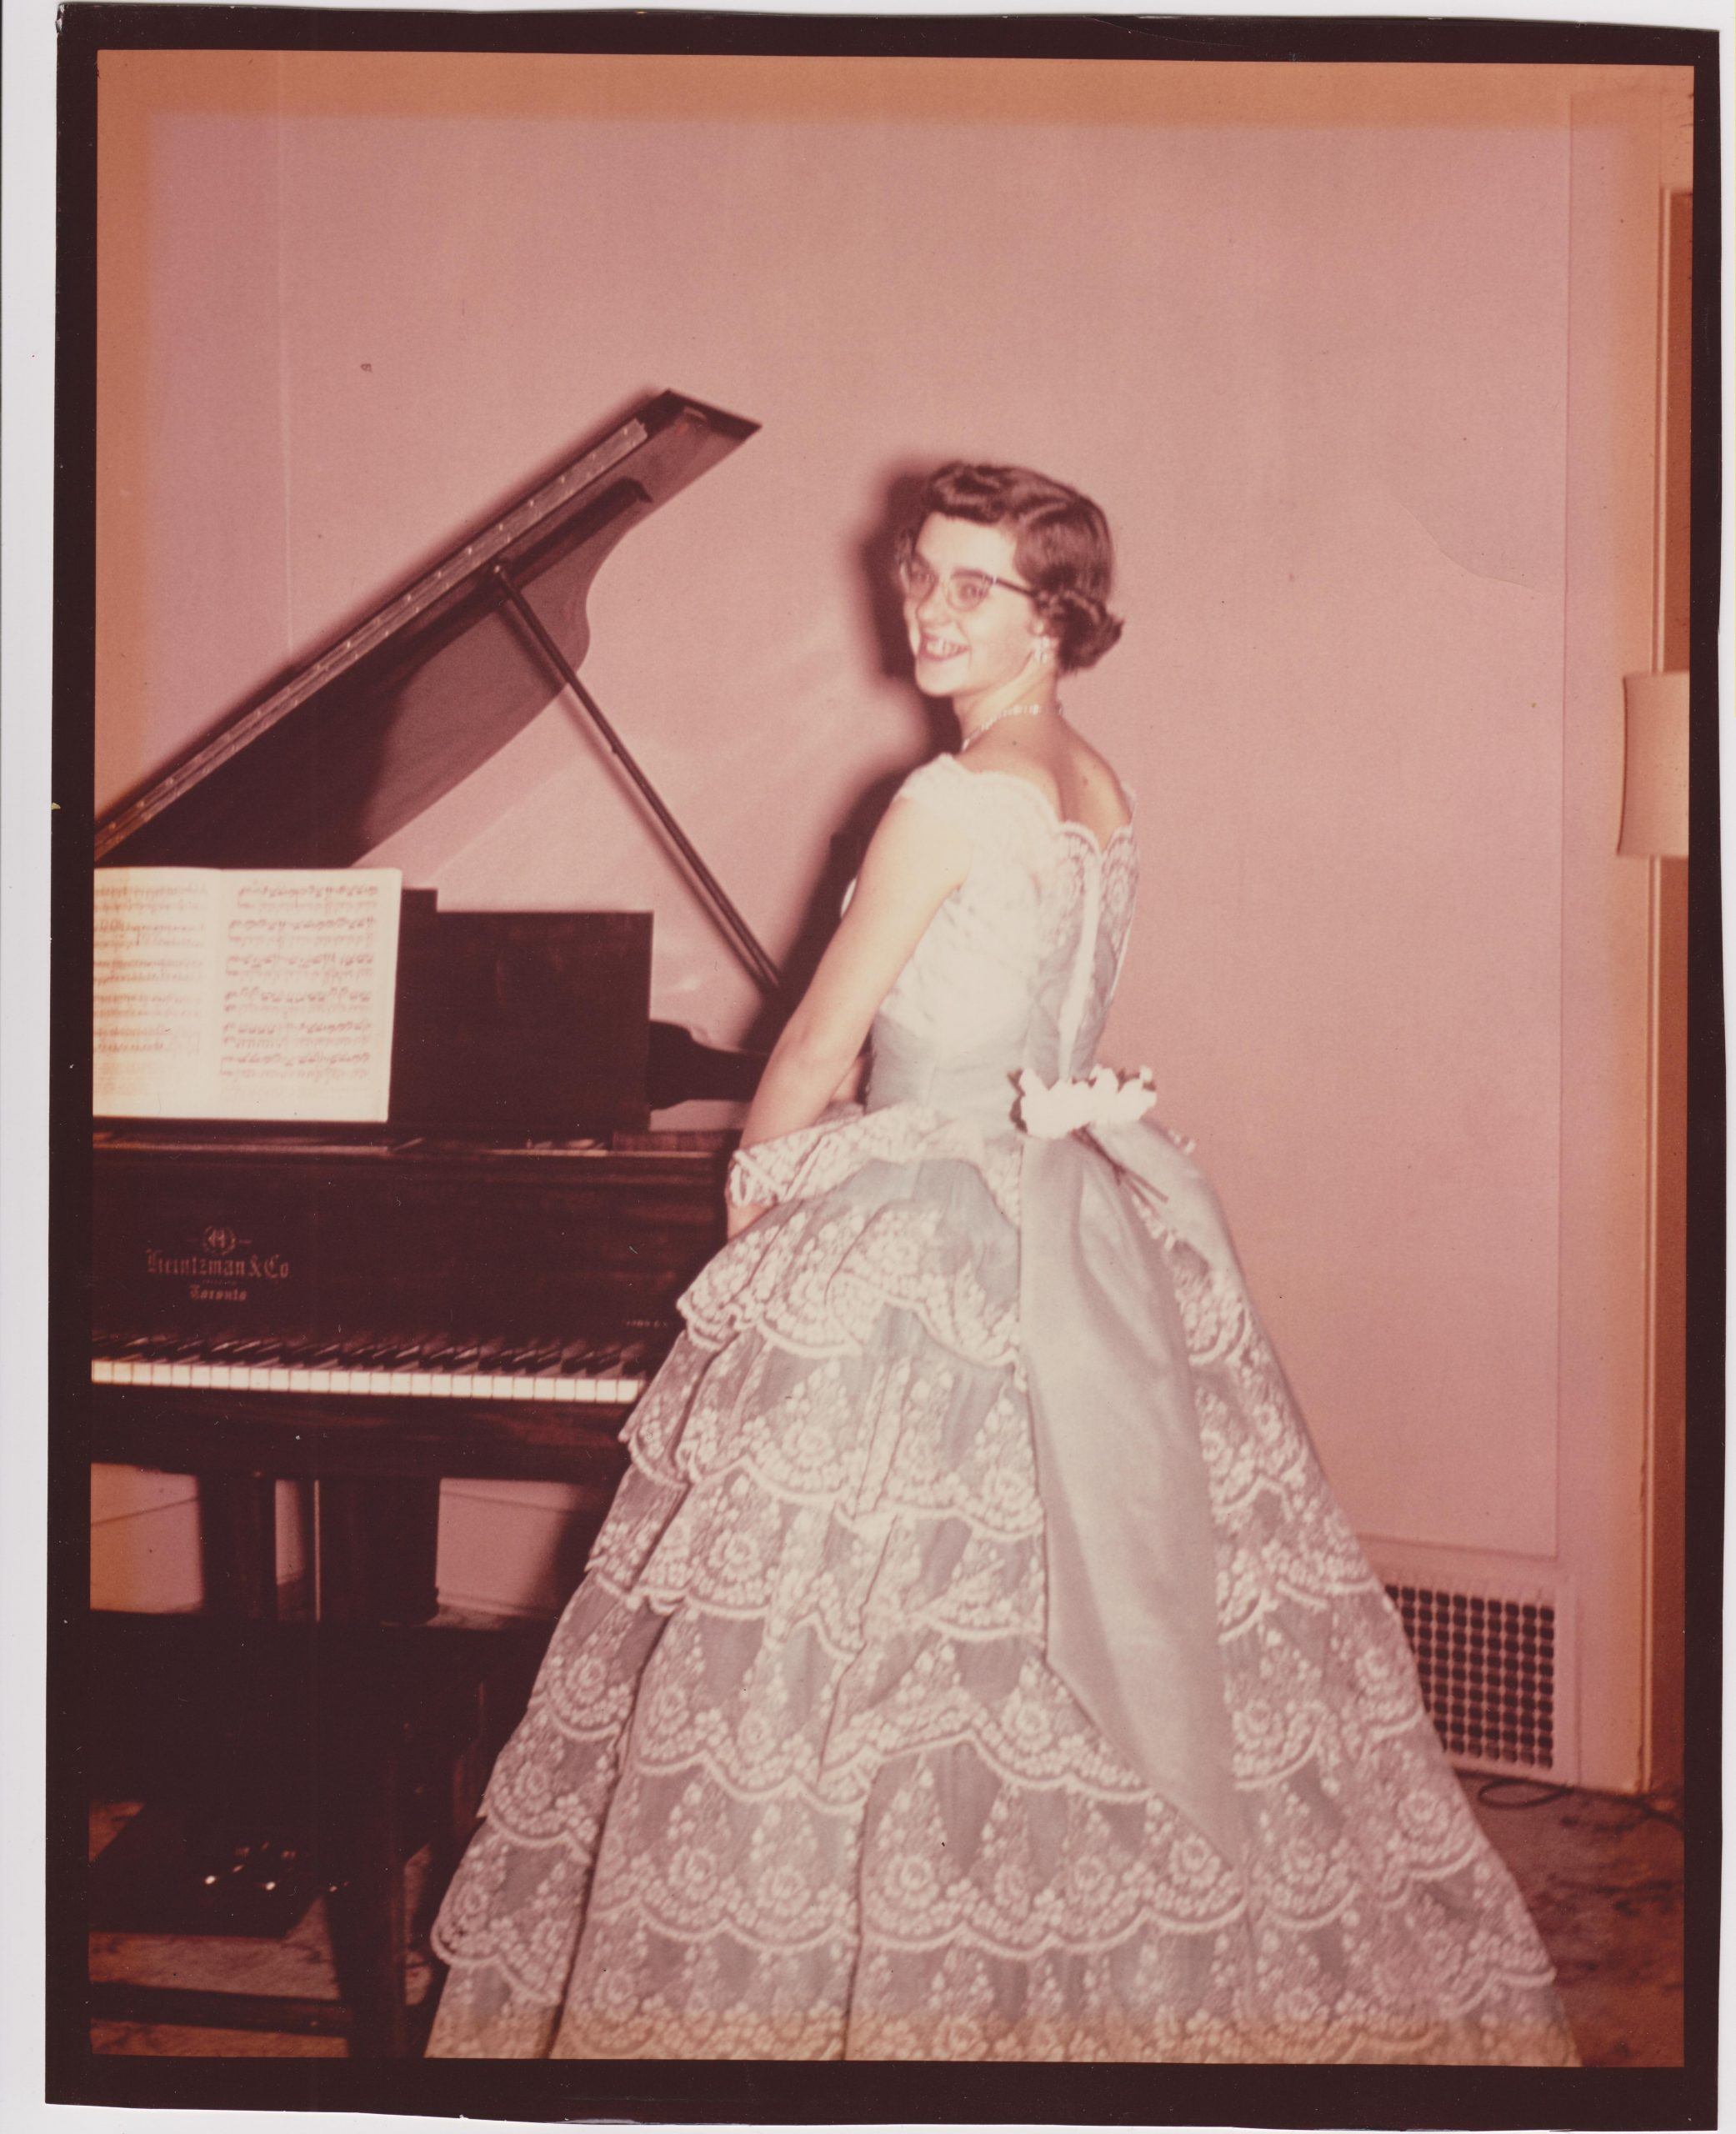 Kathleen Ross, snjm before a piano recital, 1958 standing next to a piano wearing a white dress